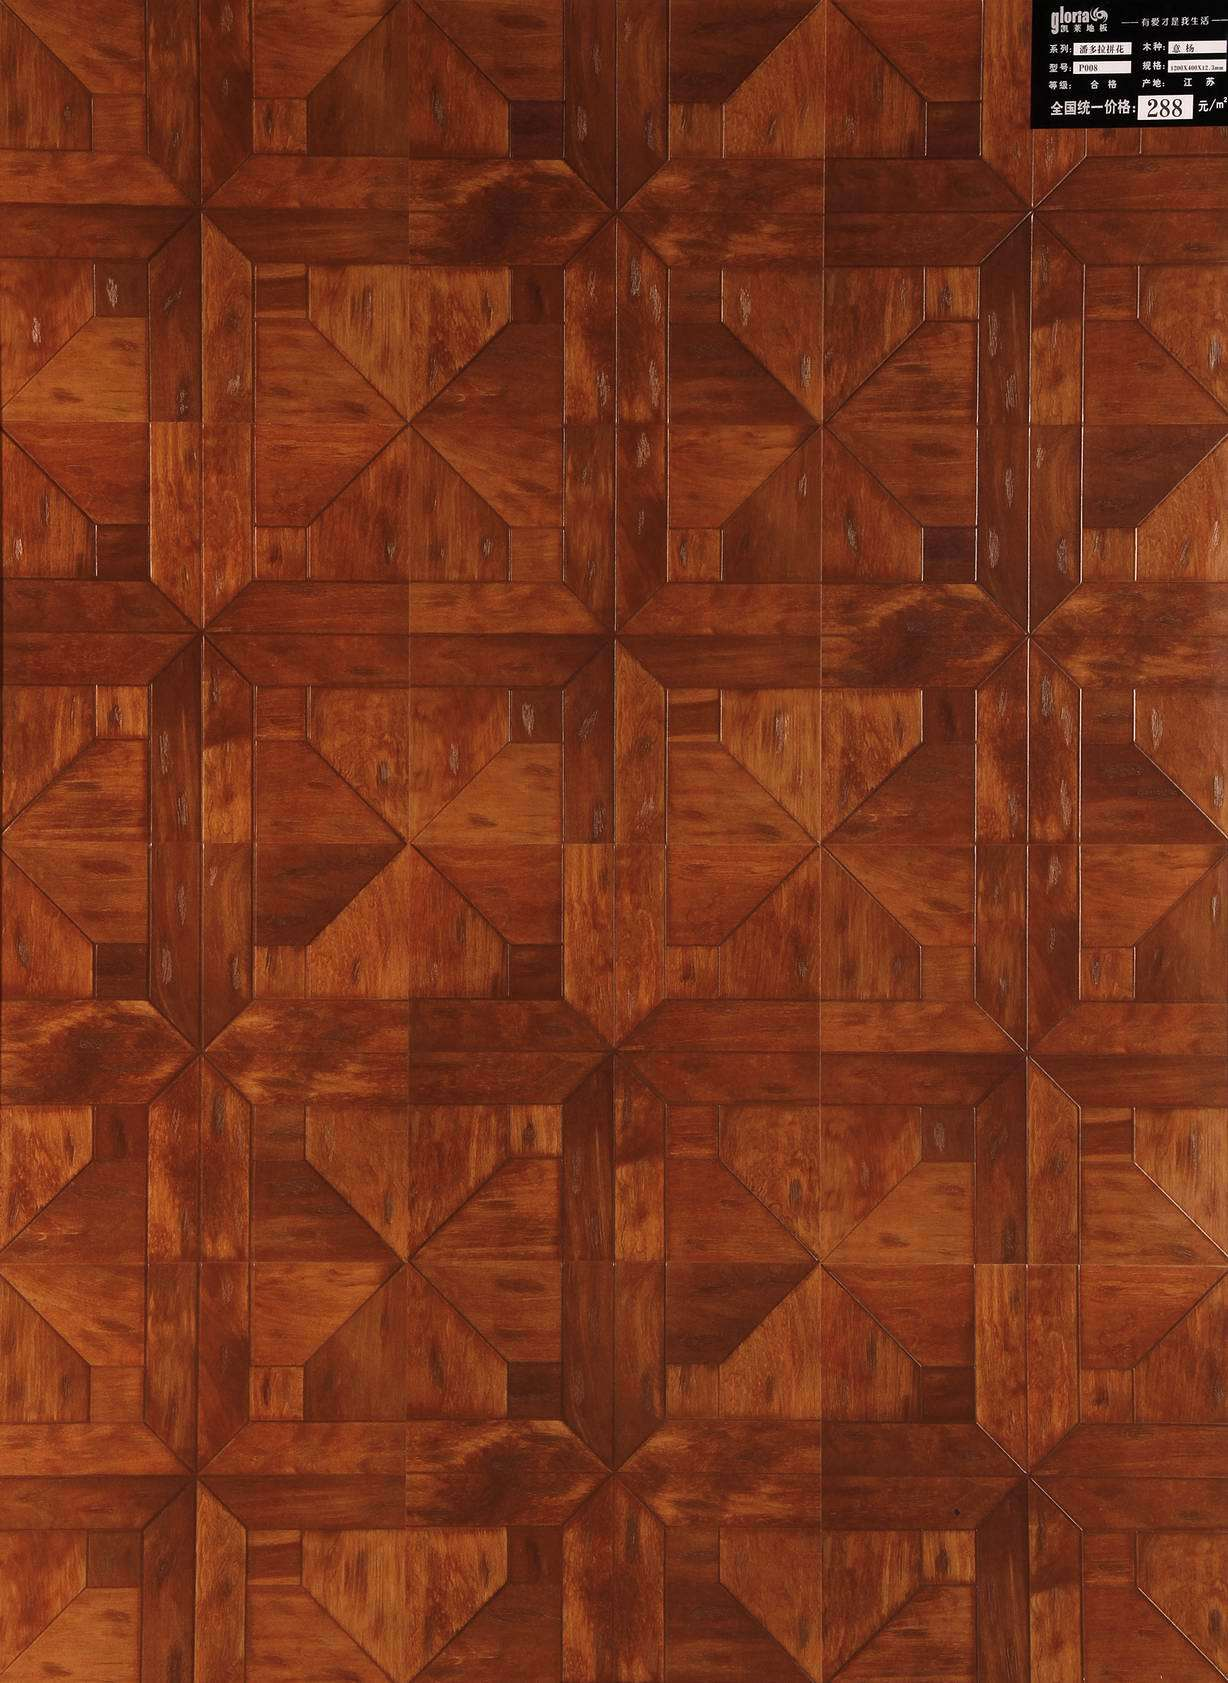 China Parquet Flooring (P008) - large image for Parquet